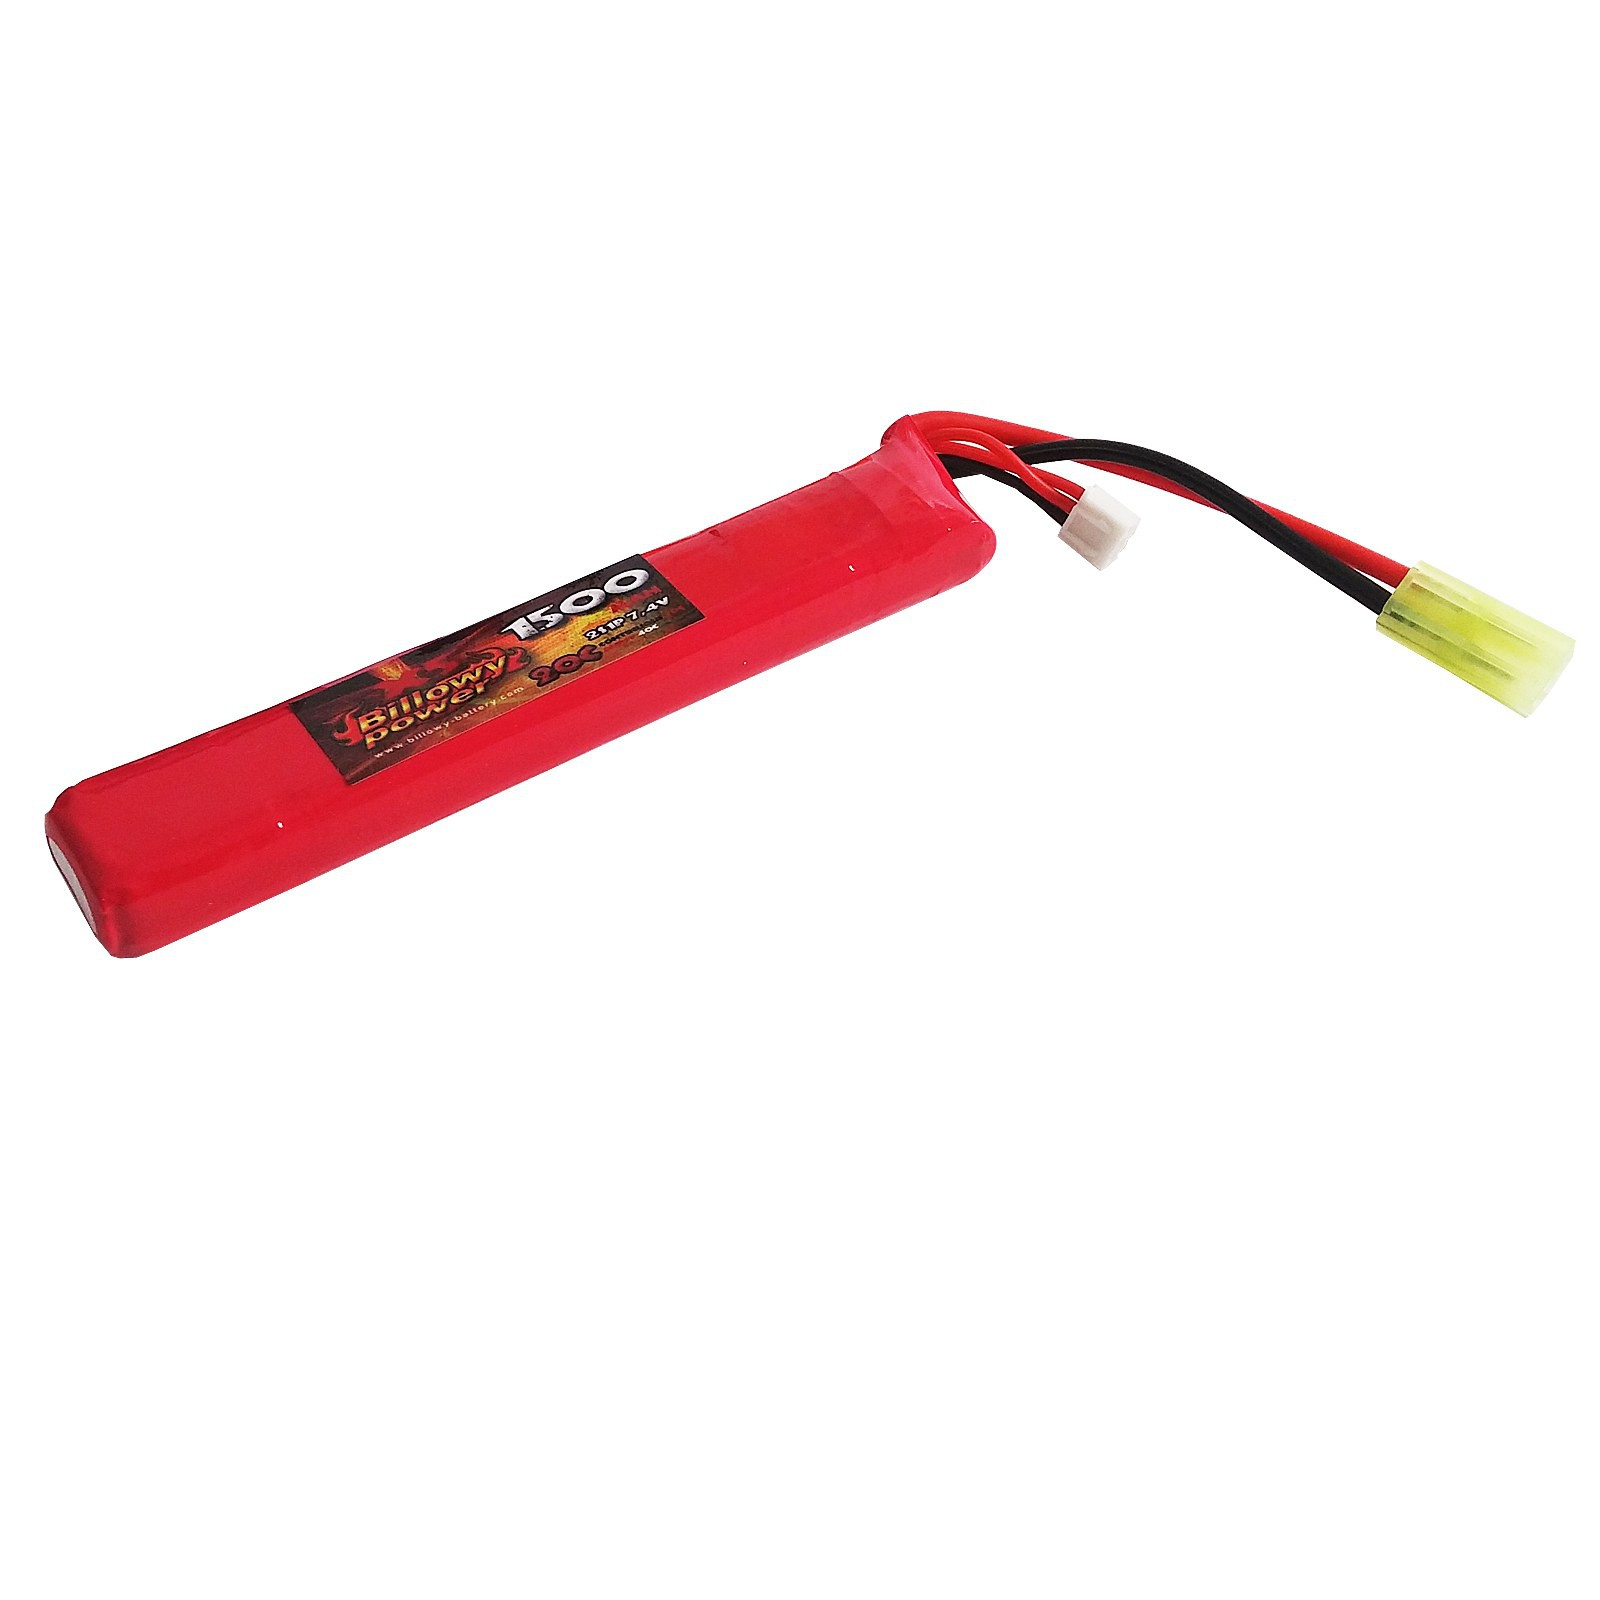 Batteria Lipo soft Air Softair 1500 mAH Ricaricabile Airsoft Billowy Power